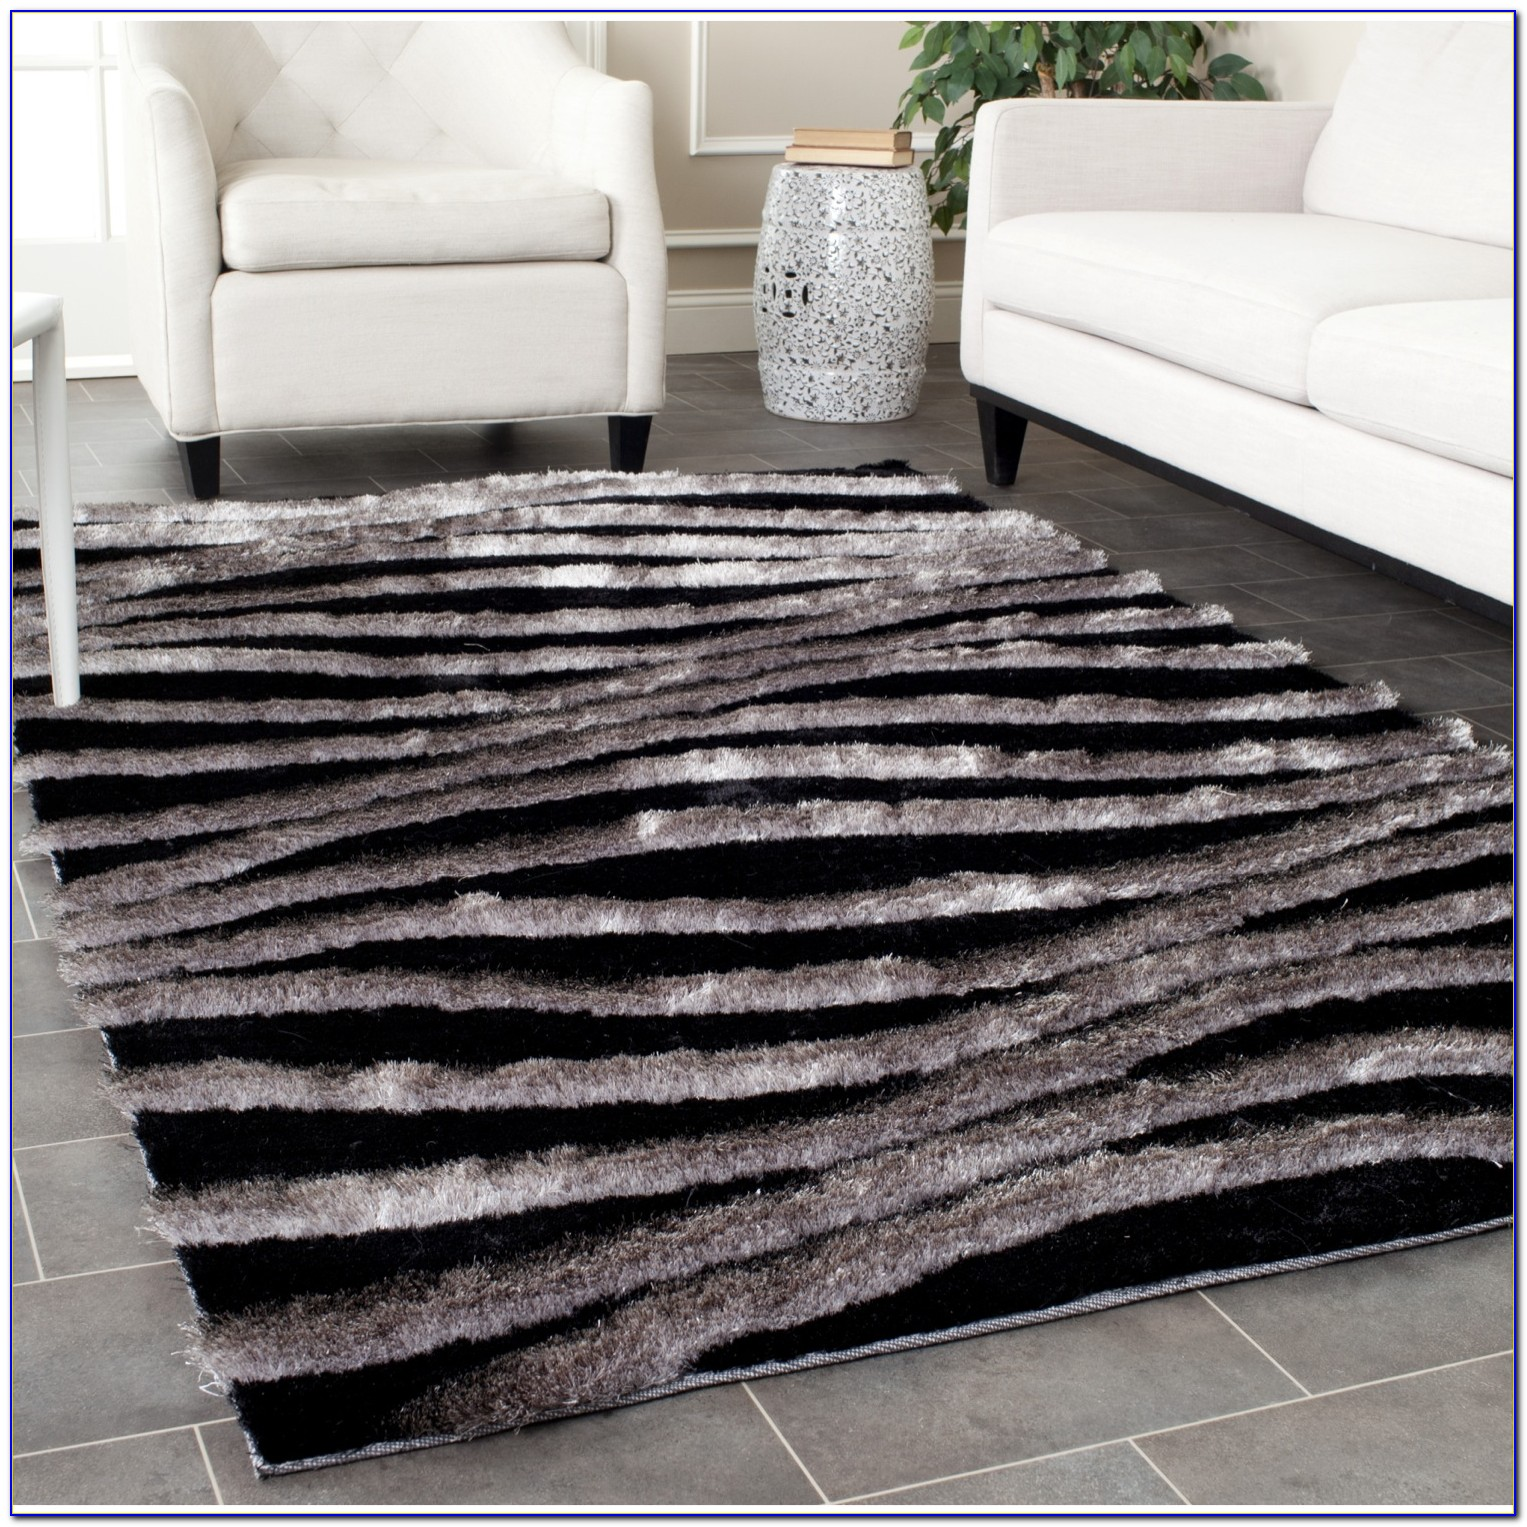 Grey Shaggy Rug Argos Rugs Home